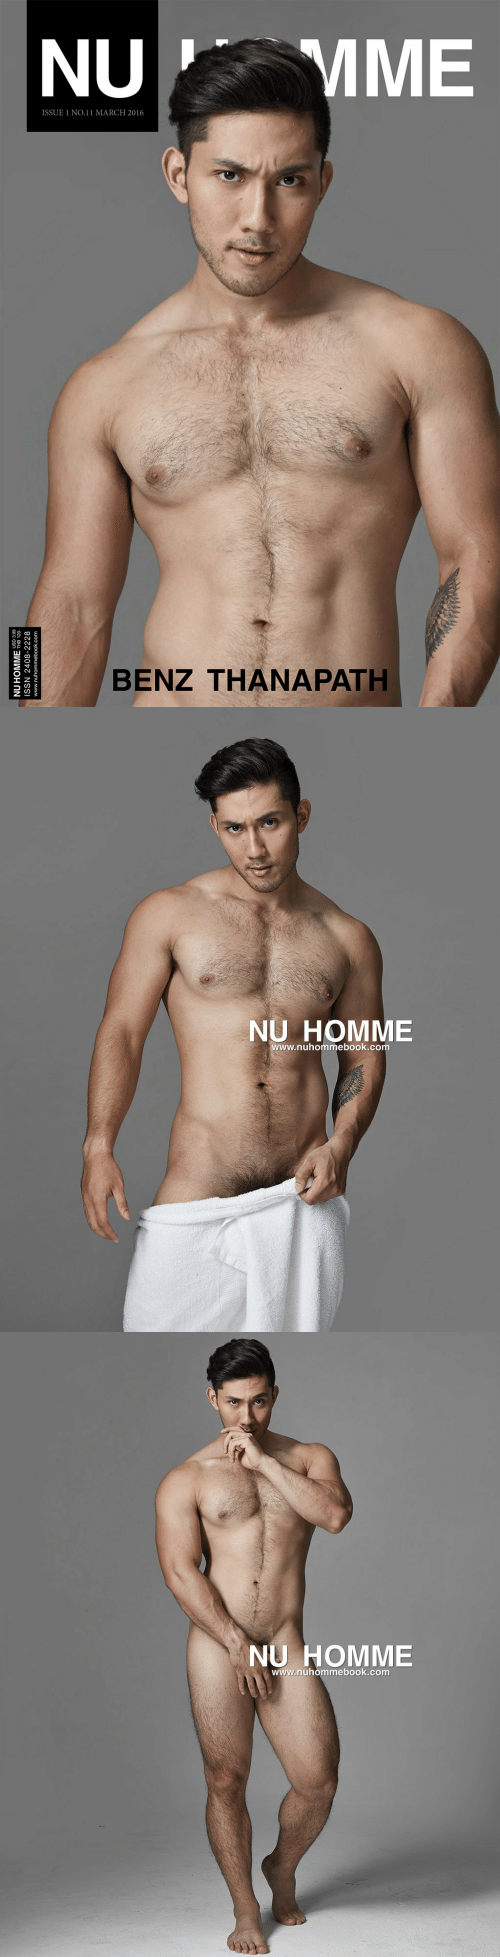 benz: MME  NU  ISSUE 1 NO.11 MARCH 2016  BENZ THANAPATH  NU HOMME HB 120  ISSN 2408-2228  www.nuhommebook.com   NU HOMME  www.nuhommebook.com   NU HOMME  www.nuhommebook.com